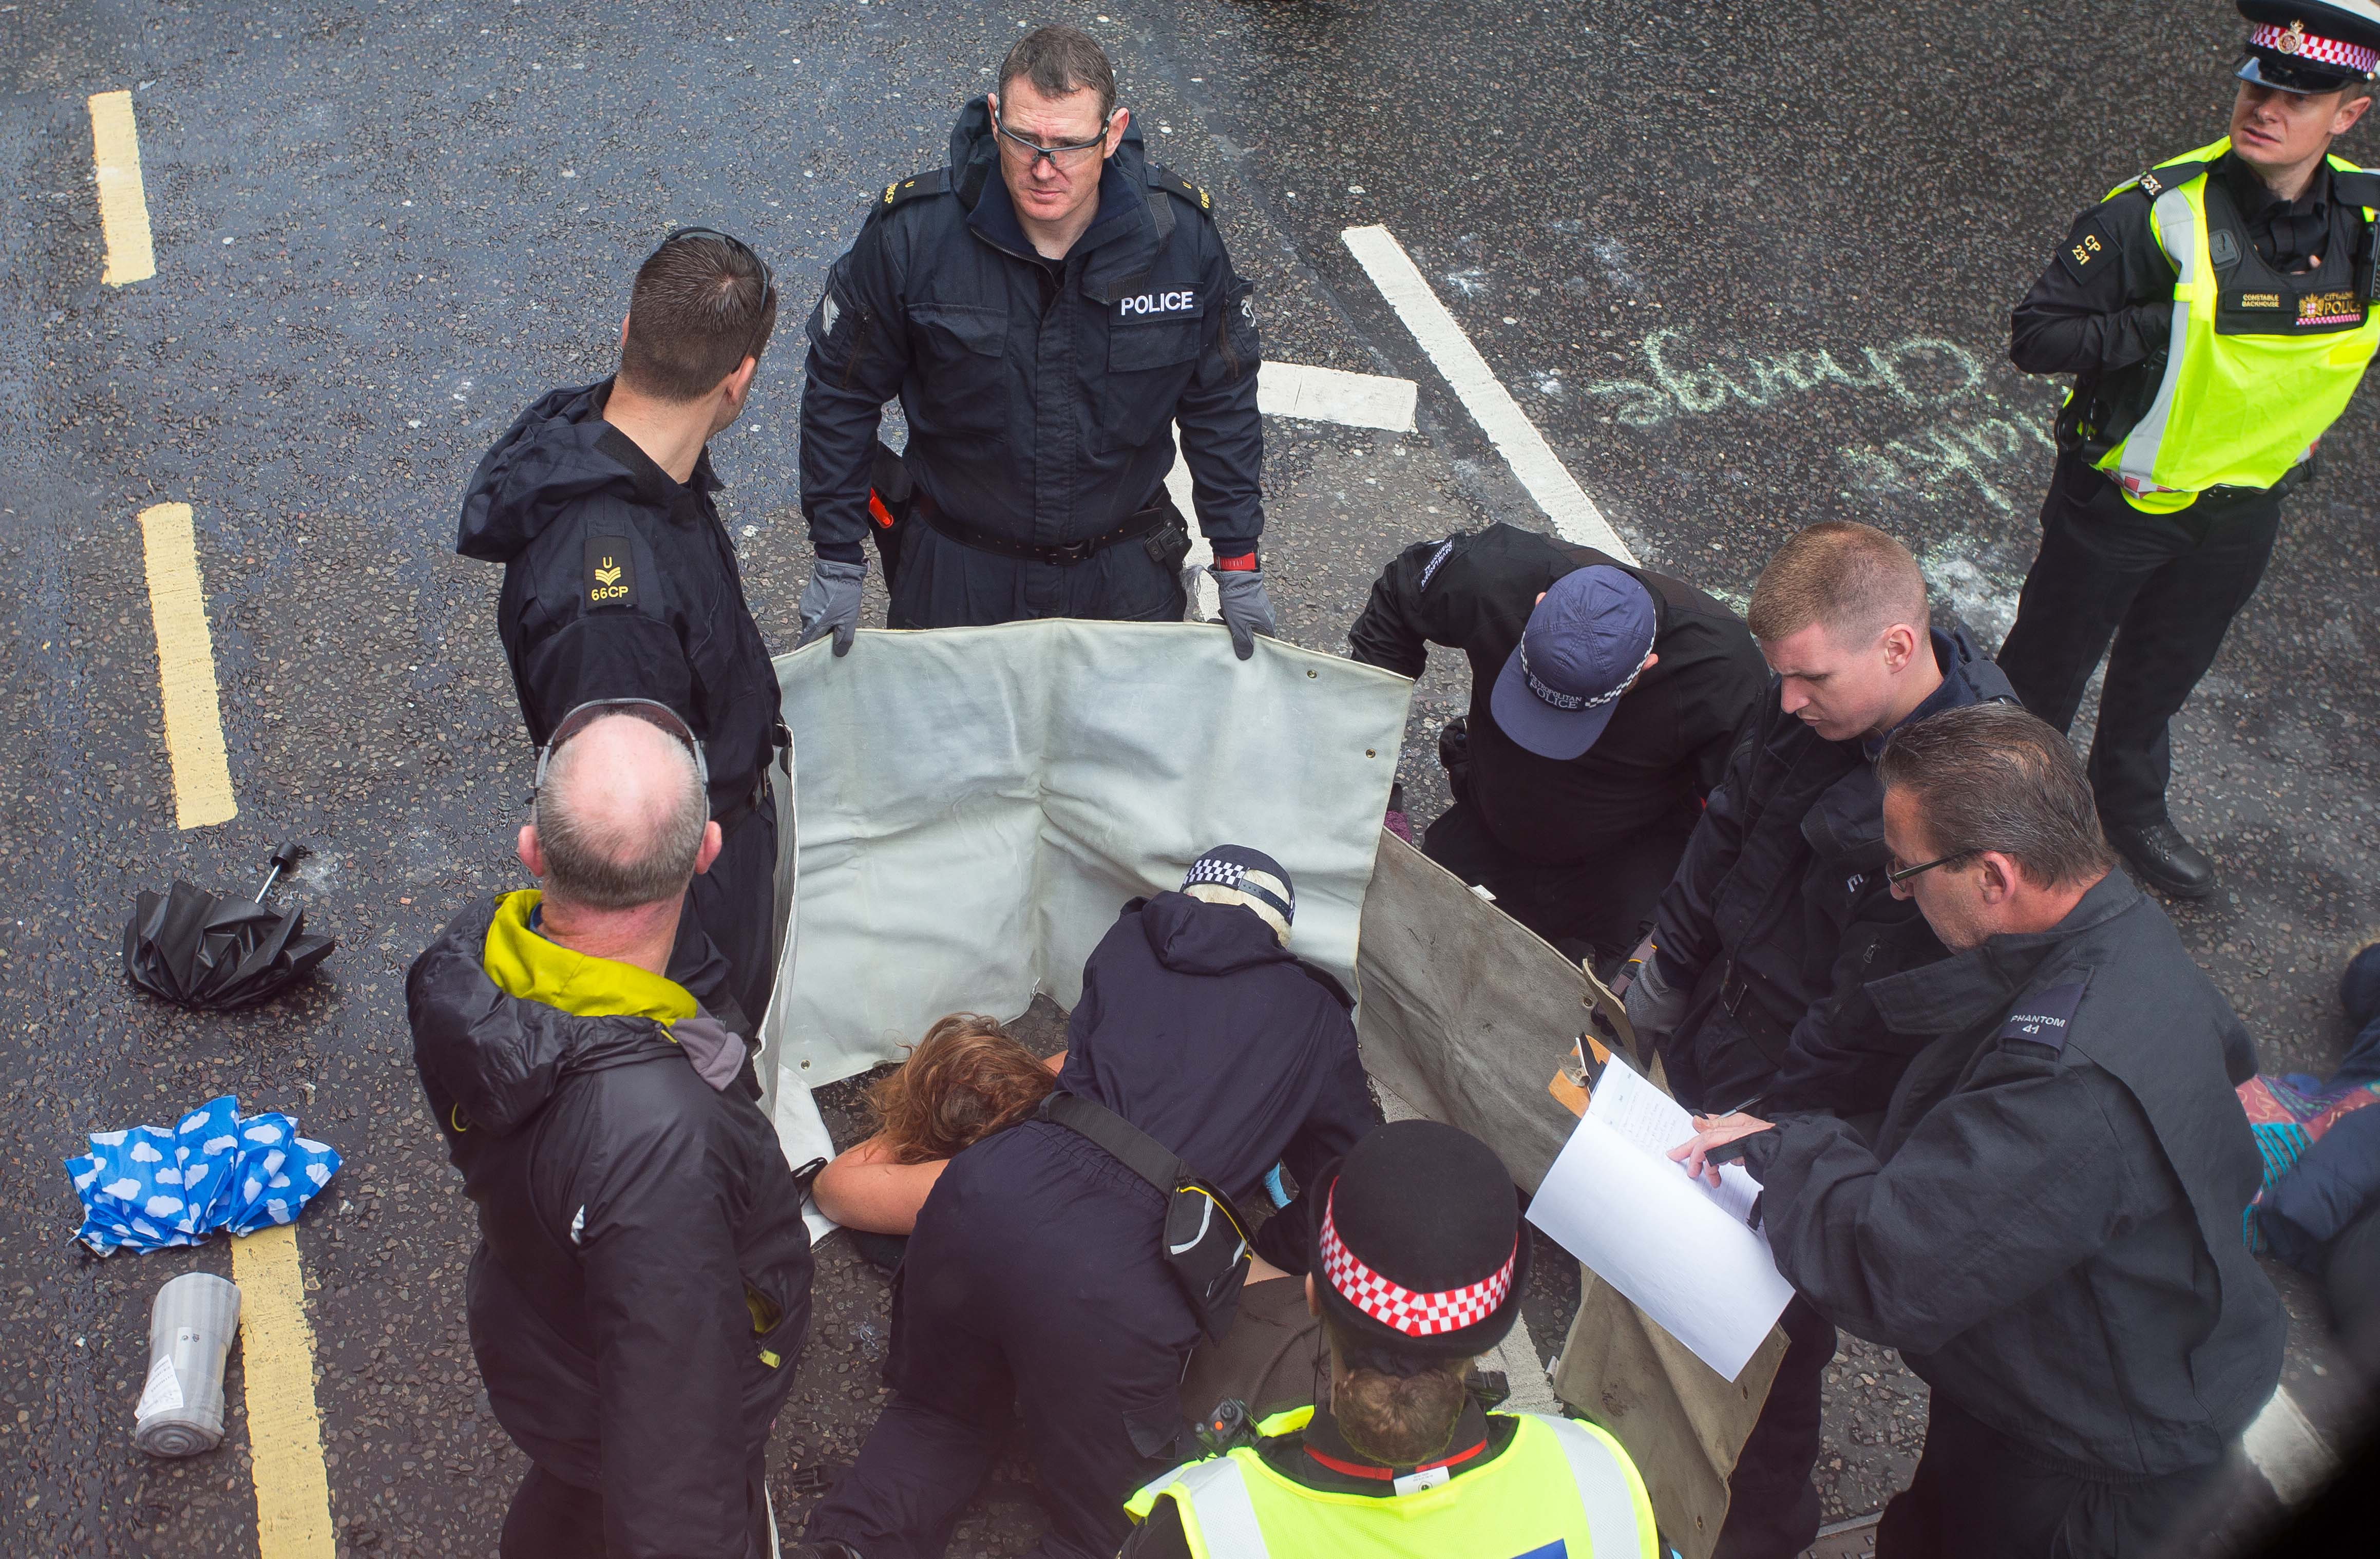 The woman was eventually removed from the road. Credit: Jamie Lorriman